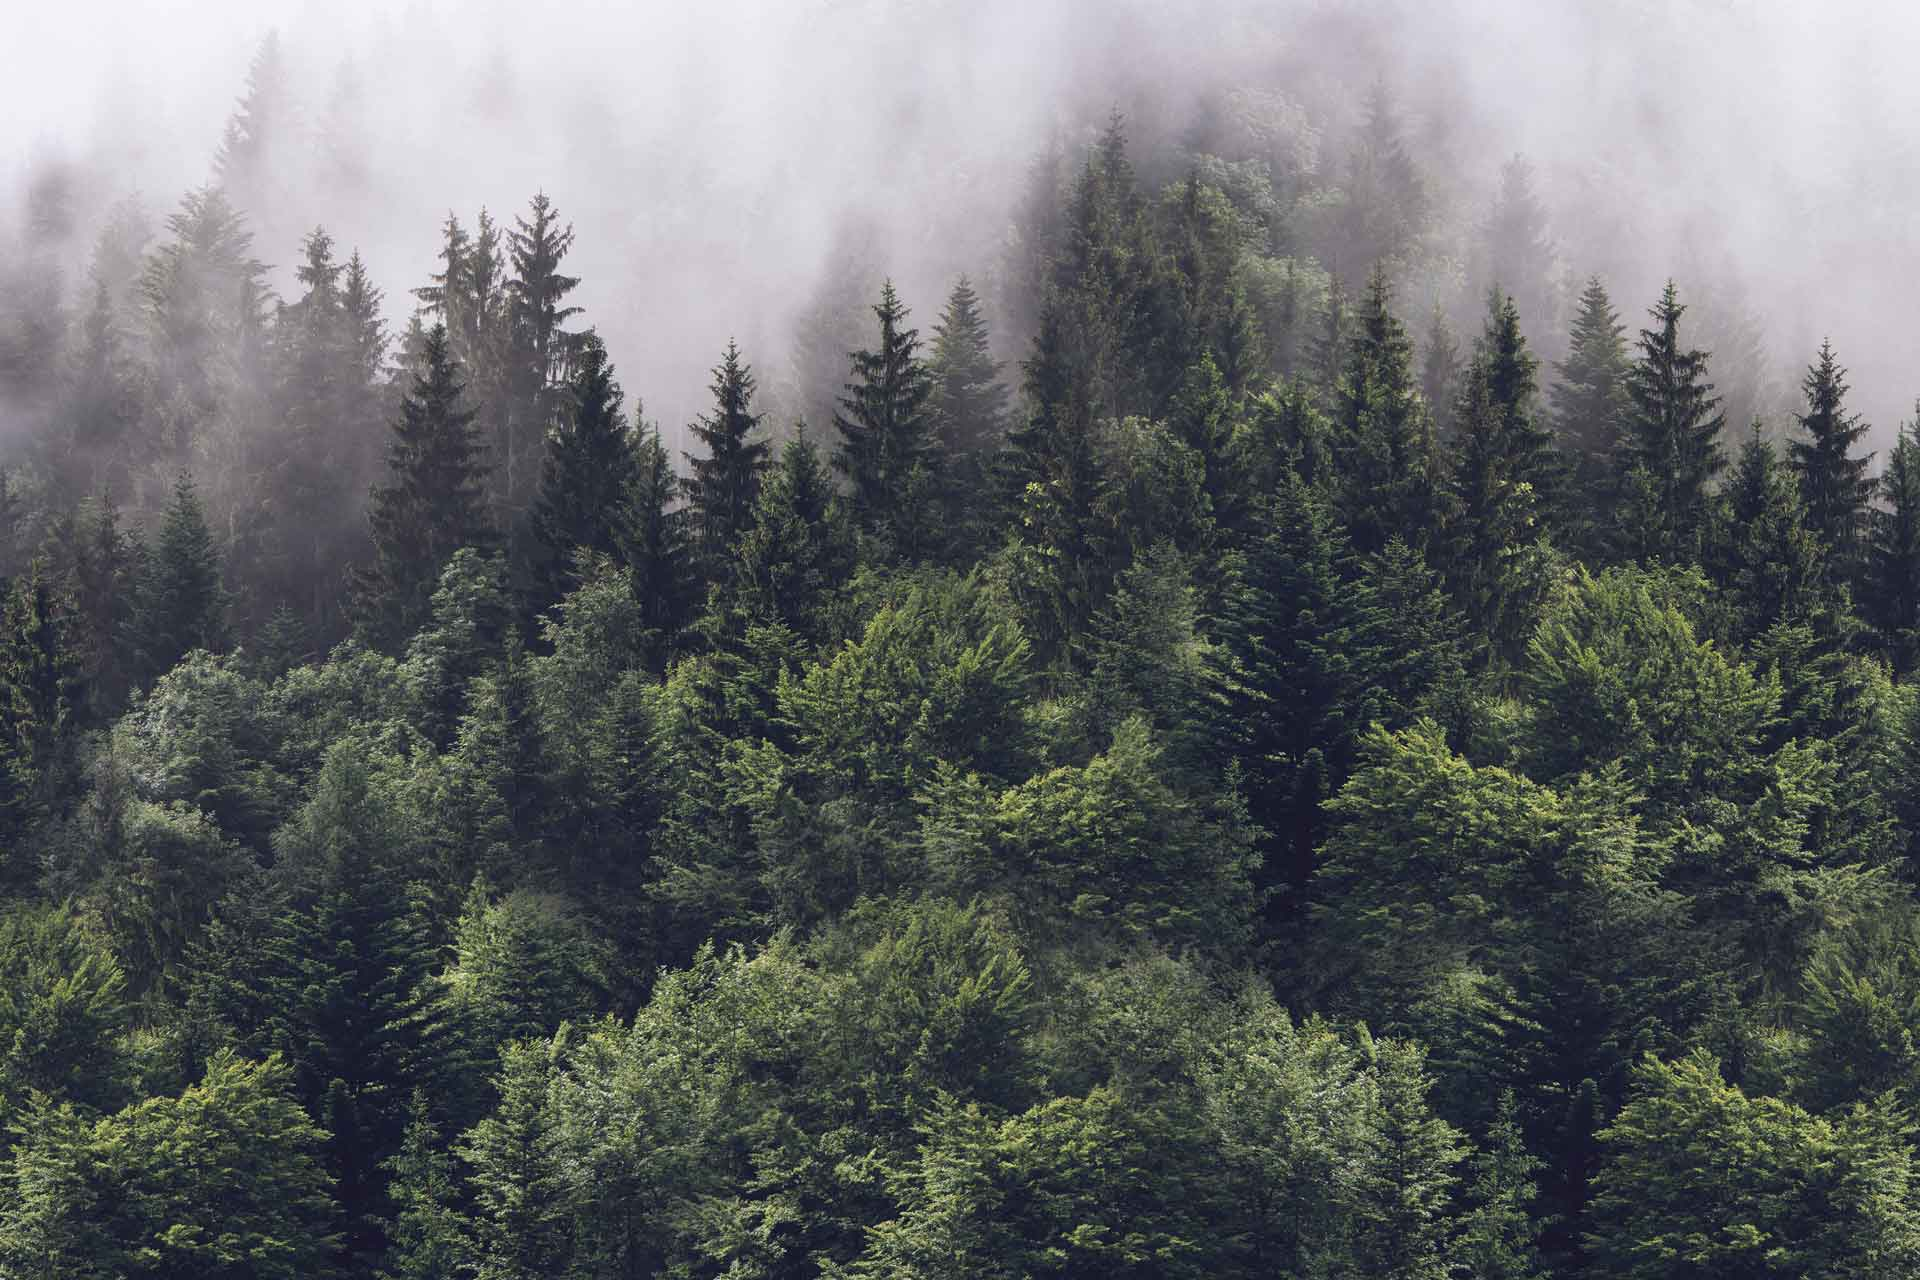 Misty Forest Wallpapers Top Free Misty Forest Backgrounds Wallpaperaccess